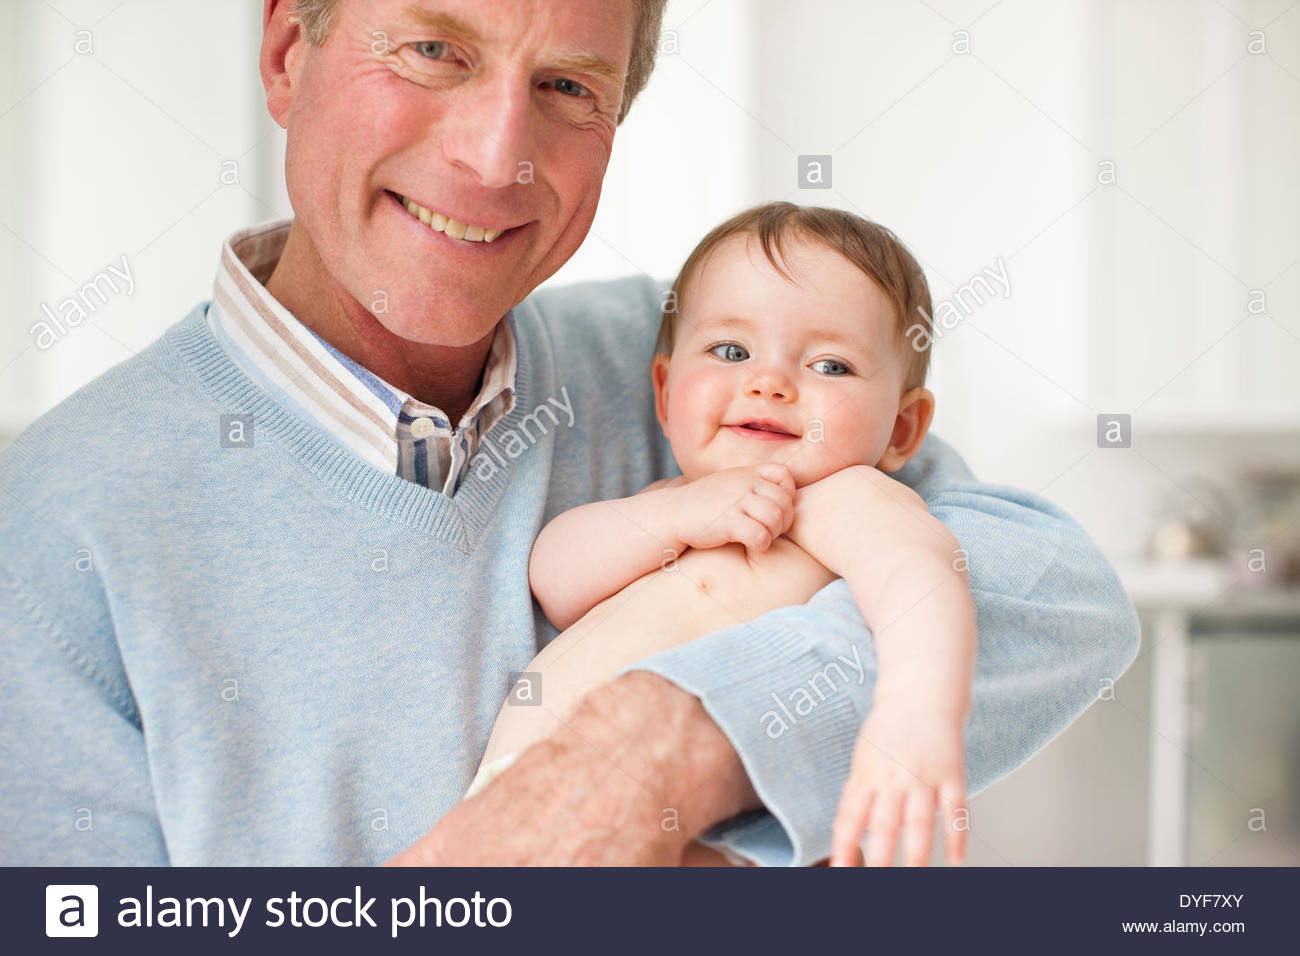 Smiling grandfather holding baby - Stock Image